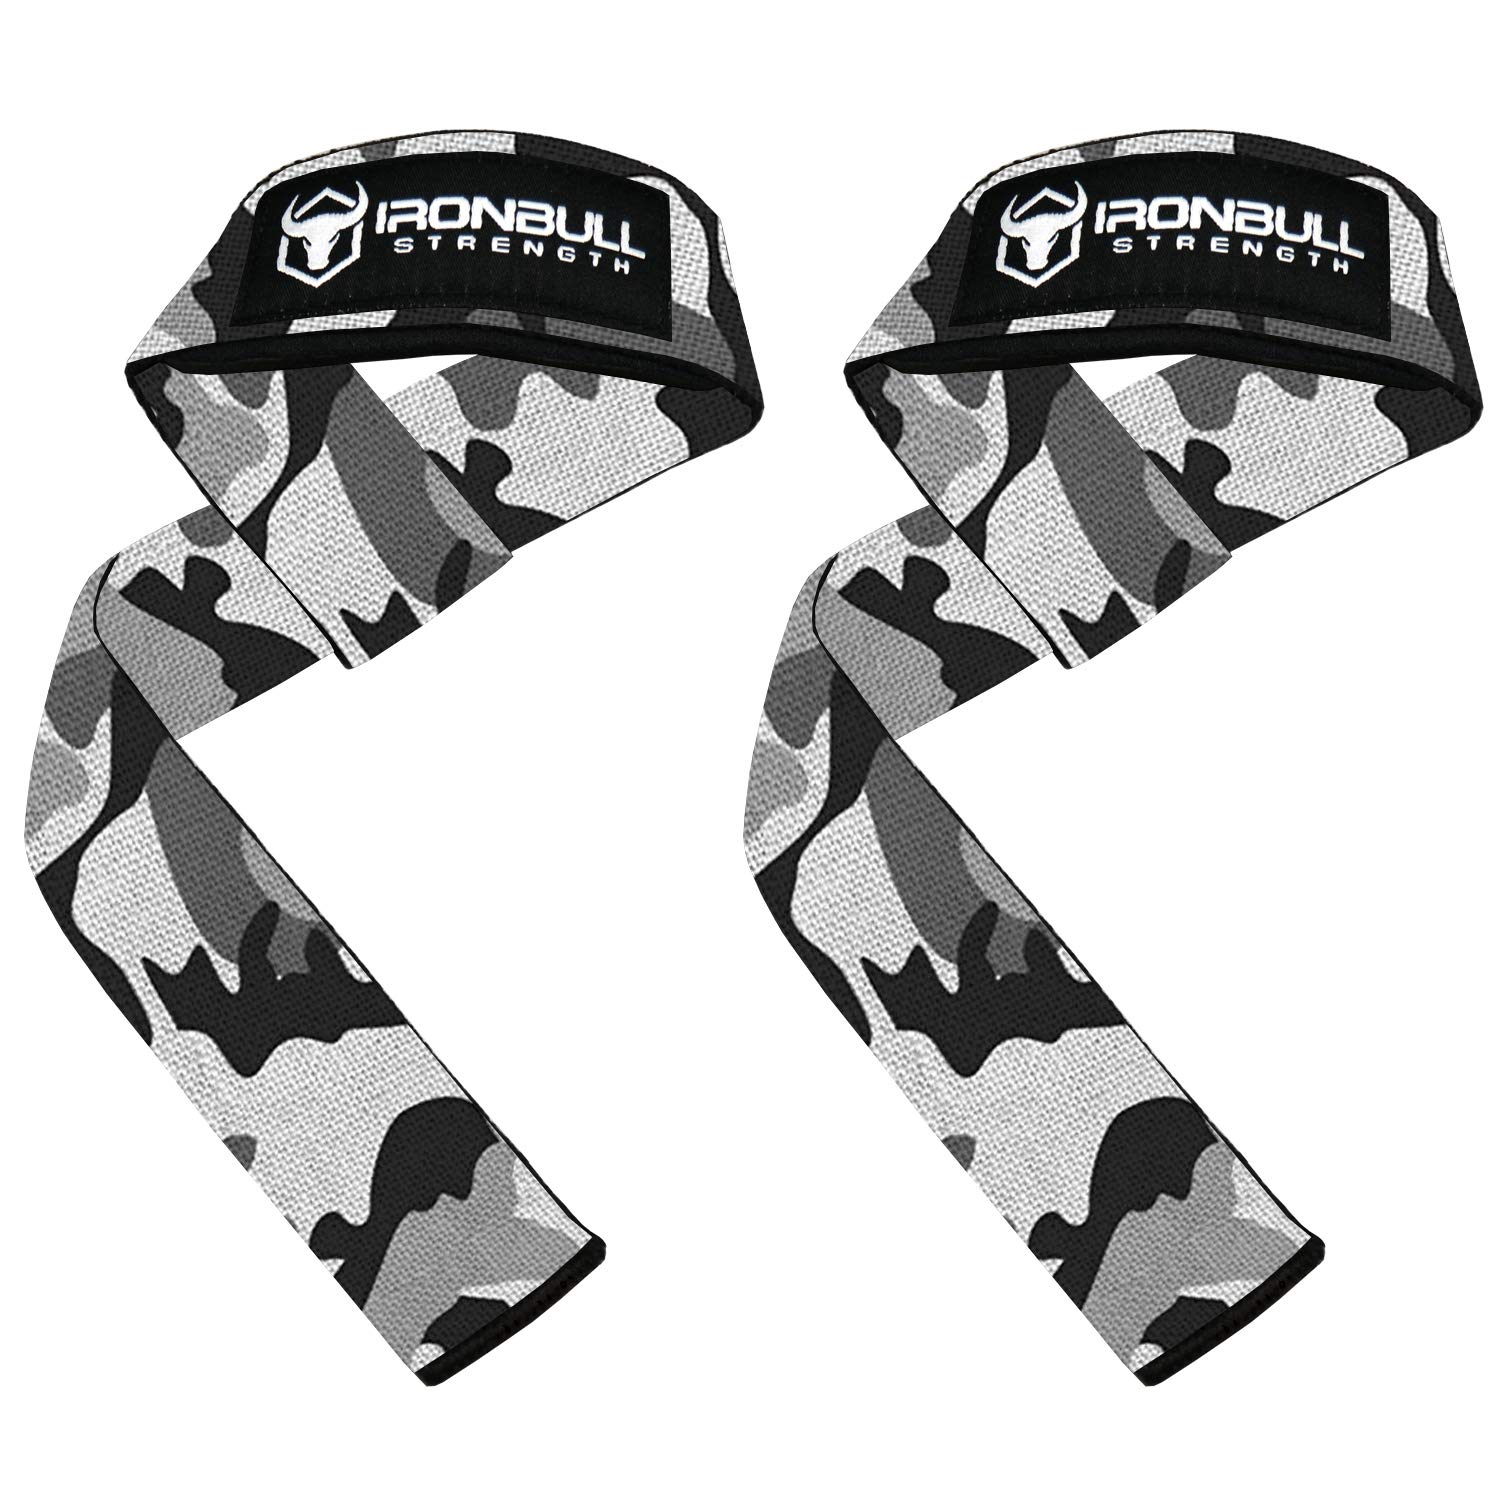 Lifting Straps (1 Pair) - Padded Wrist Support Wraps - for Powerlifting, Bodybuilding, Gym Workout, Strength Training, Deadlifts & Fitness Workout (Camo/White)